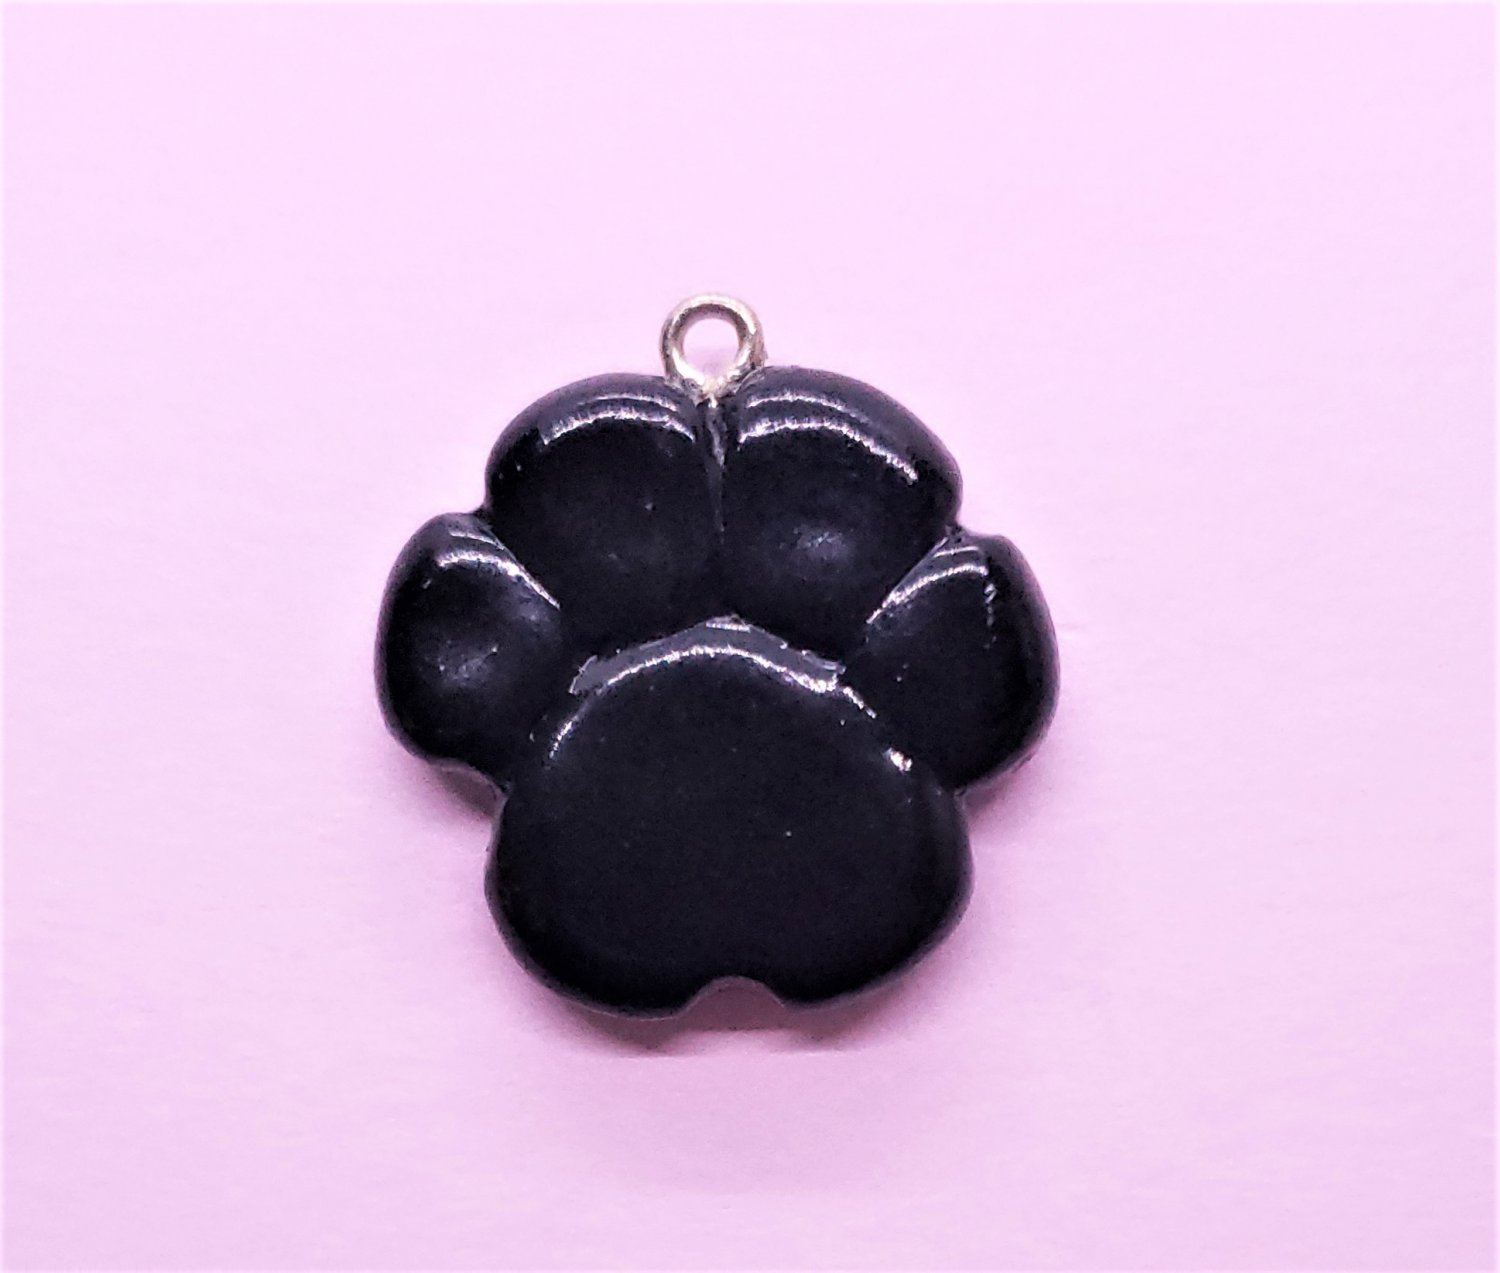 CLEARANCE Black Paw Print Pendant - Cold Porcelain Clay Charm